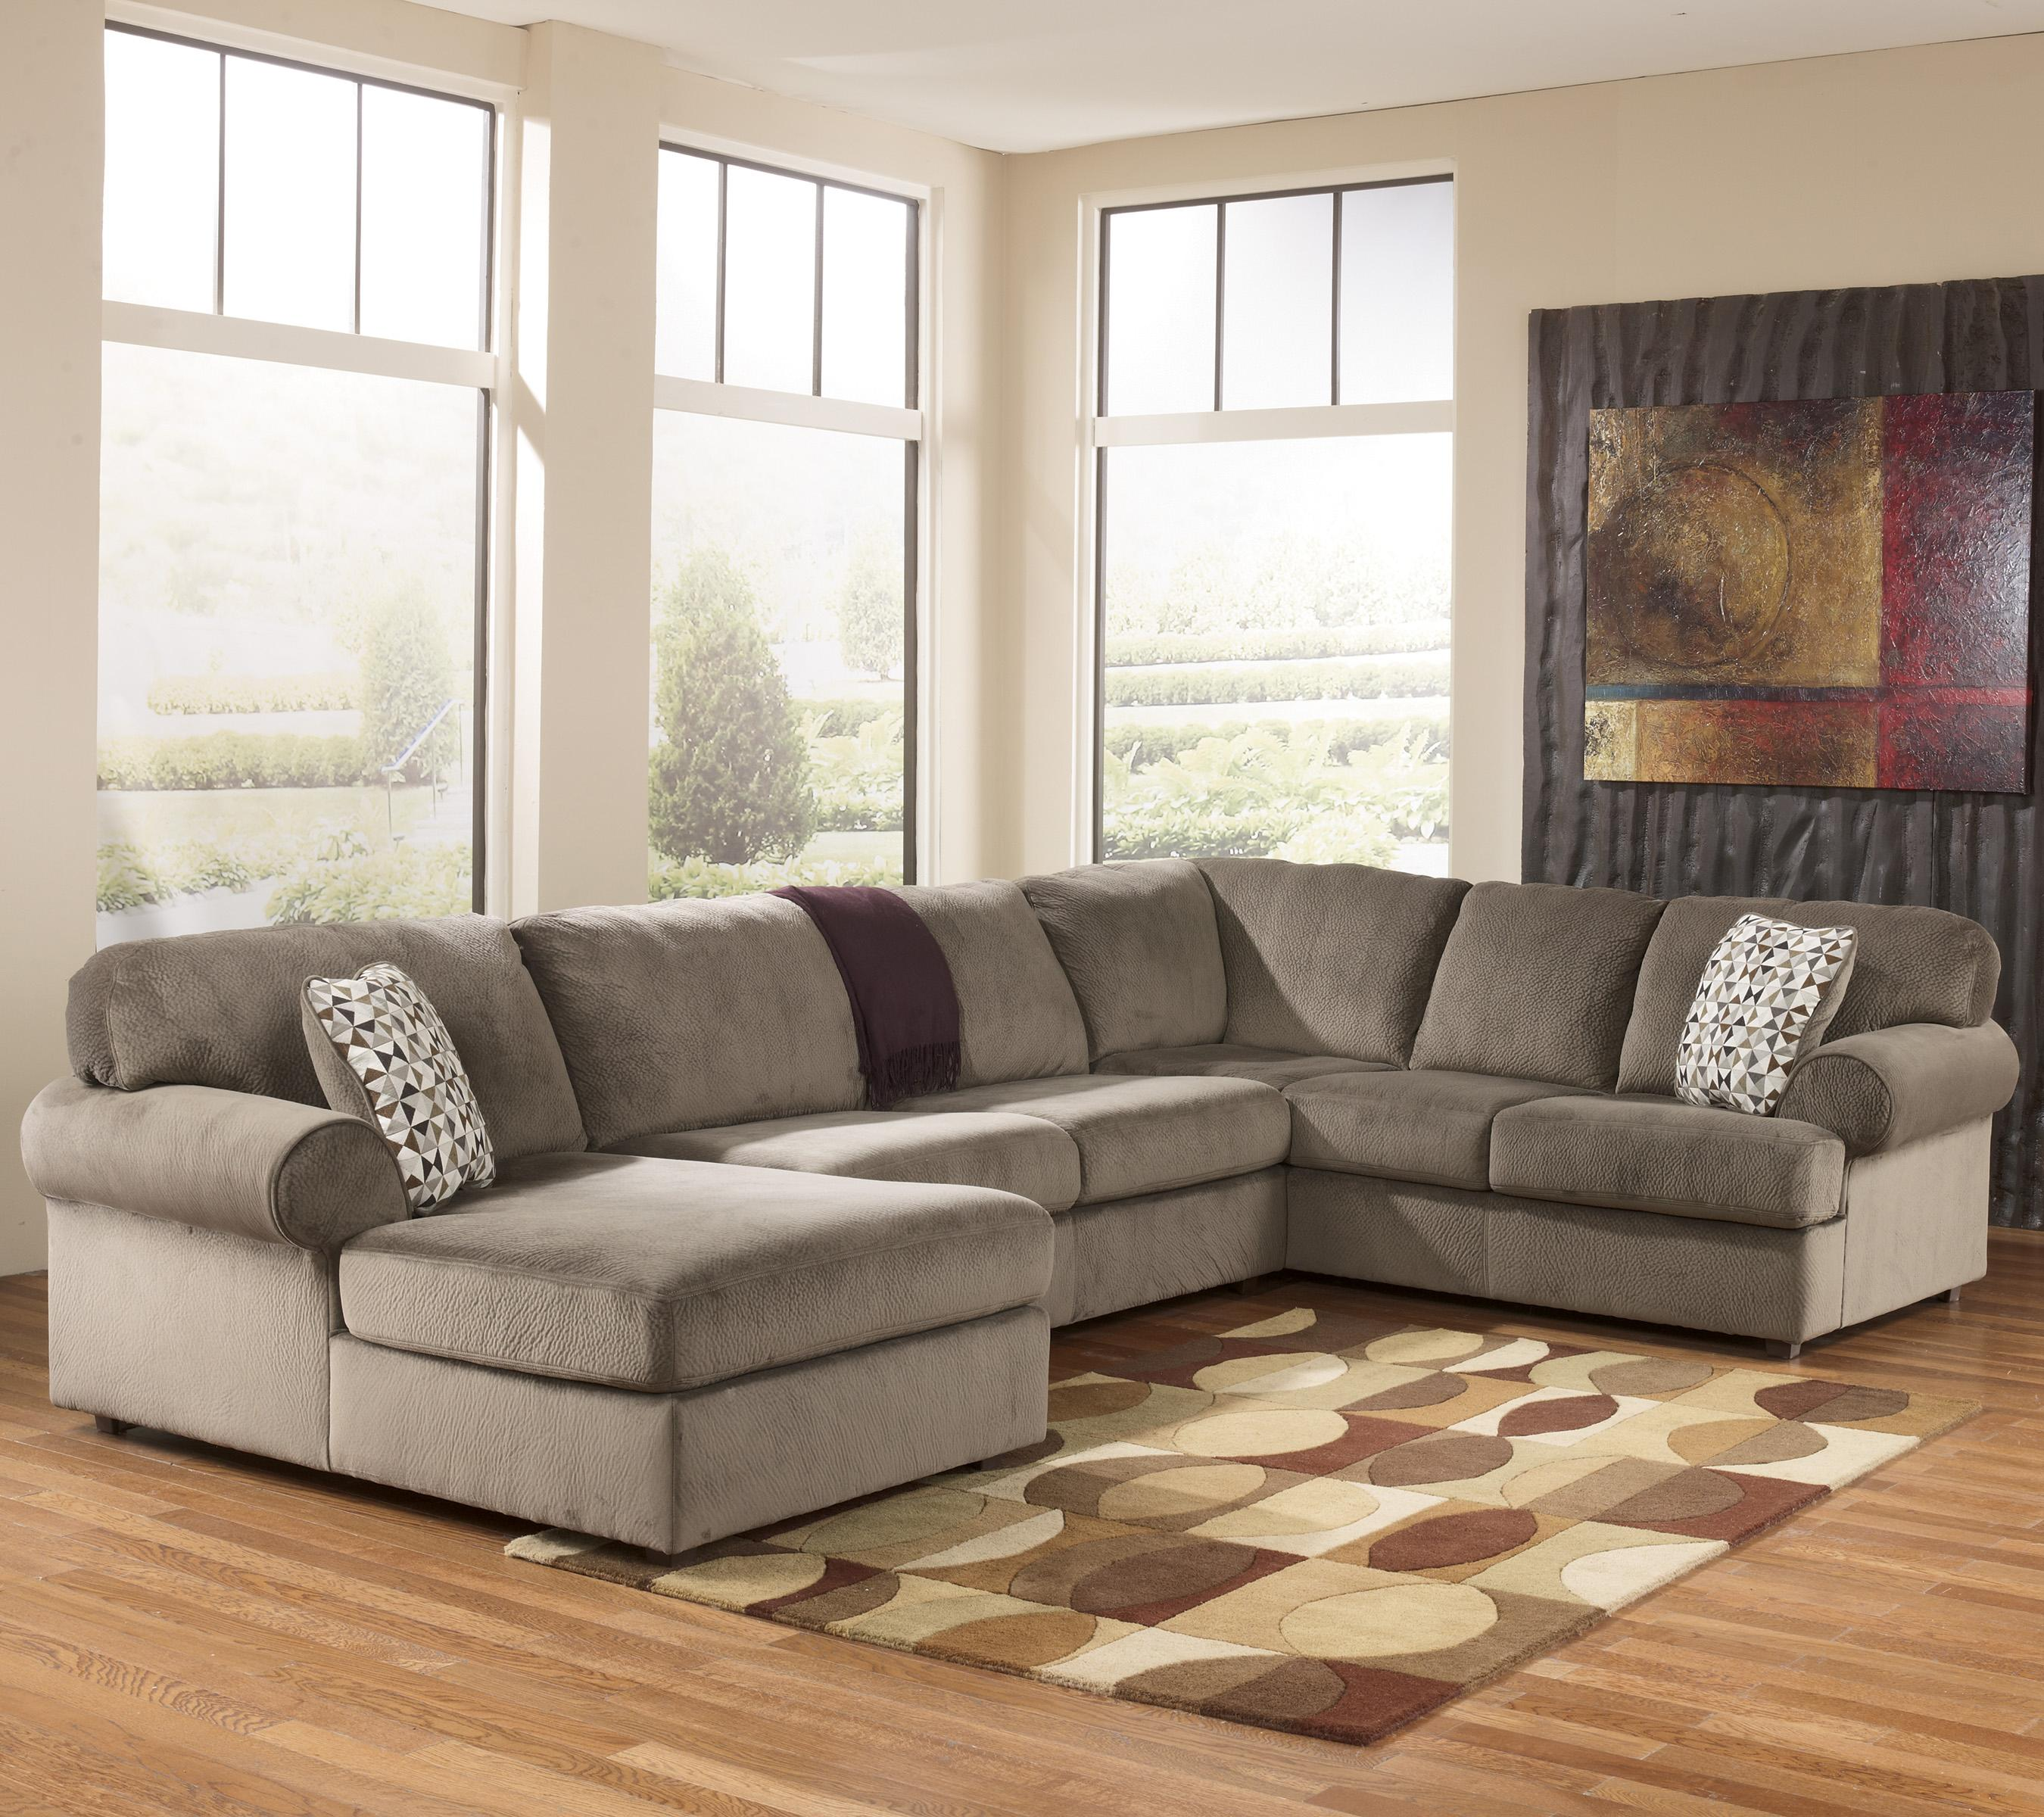 Ashley Furtniture: Casual Sectional Sofa With Left Chaise By Signature Design